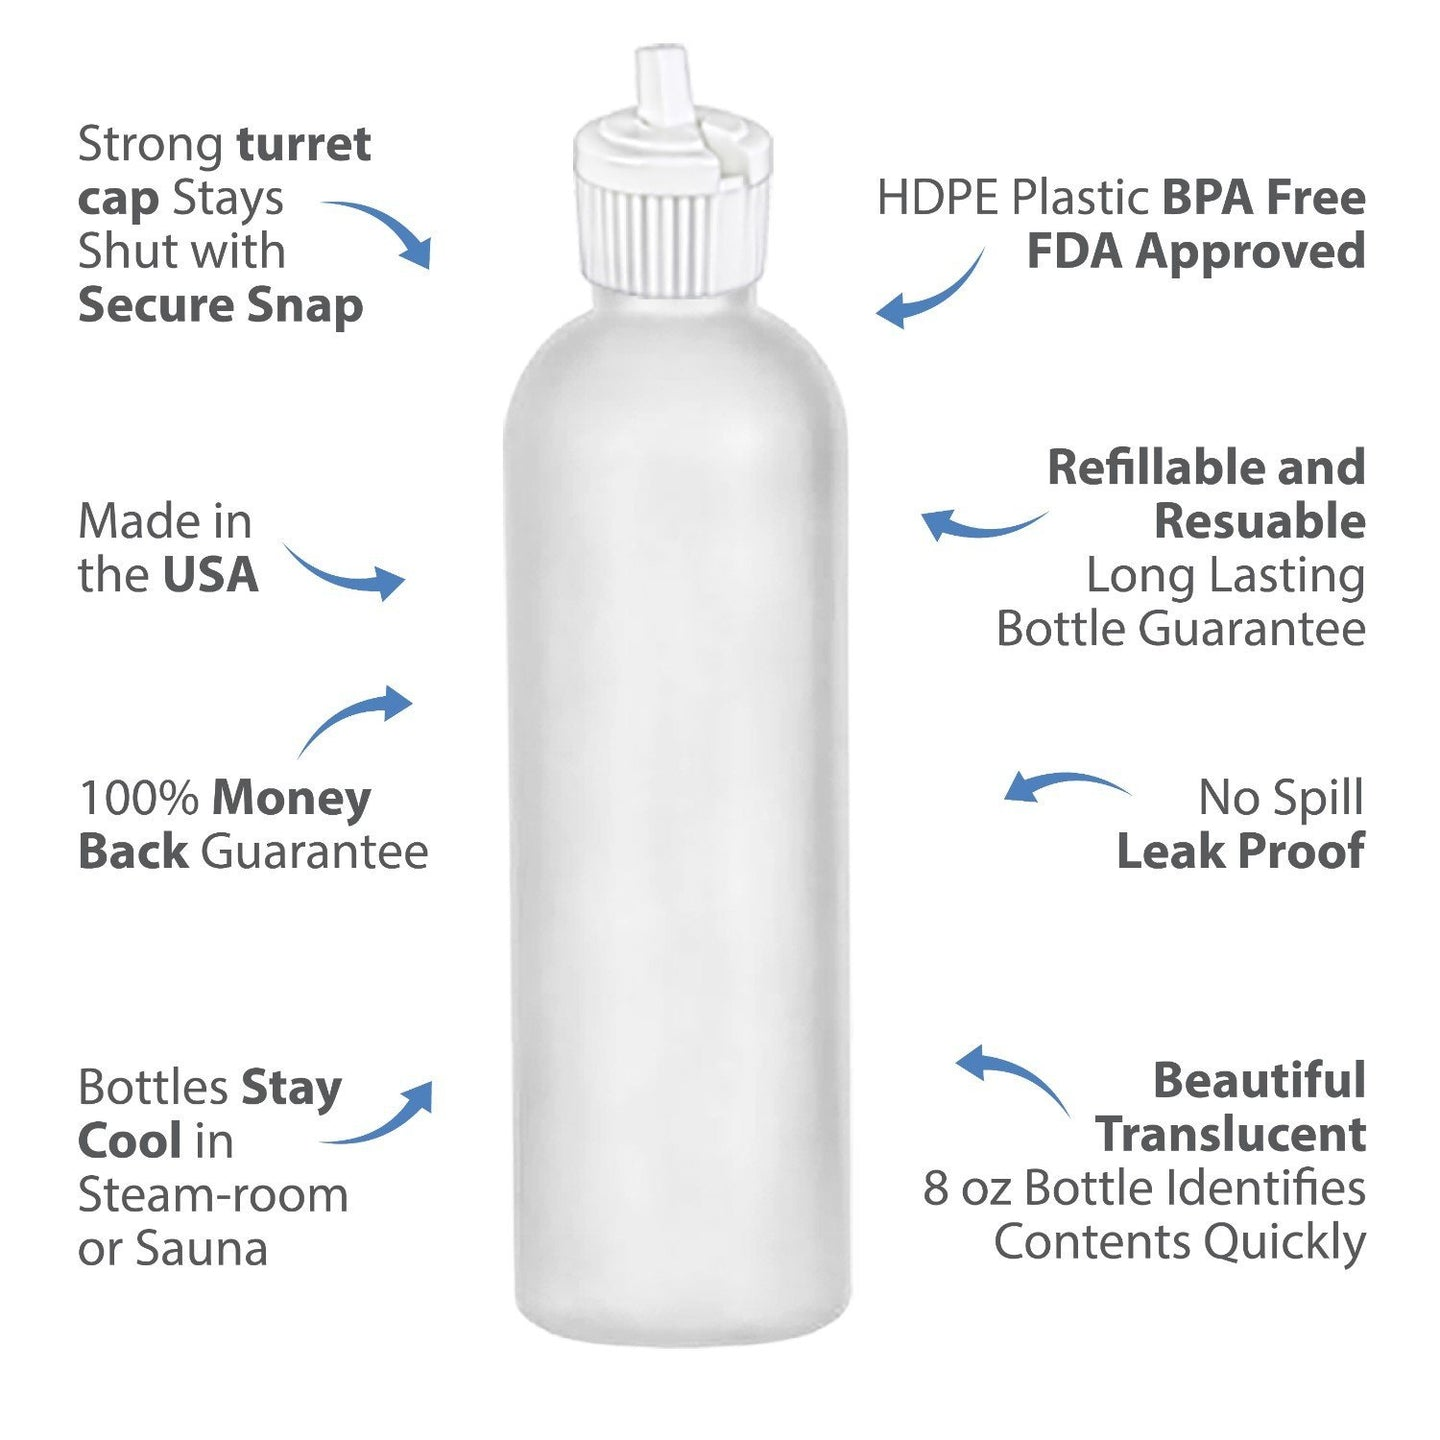 MoYo Natural Labs 8 oz Squirt Bottles, Squeezable Empty Travel Containers, Toggle Spout BPA Free HDPE Plastic Essential Oils Liquids, Toiletry/Cosmetic Bottles (20-410) (Pack of 4, Translucent White)